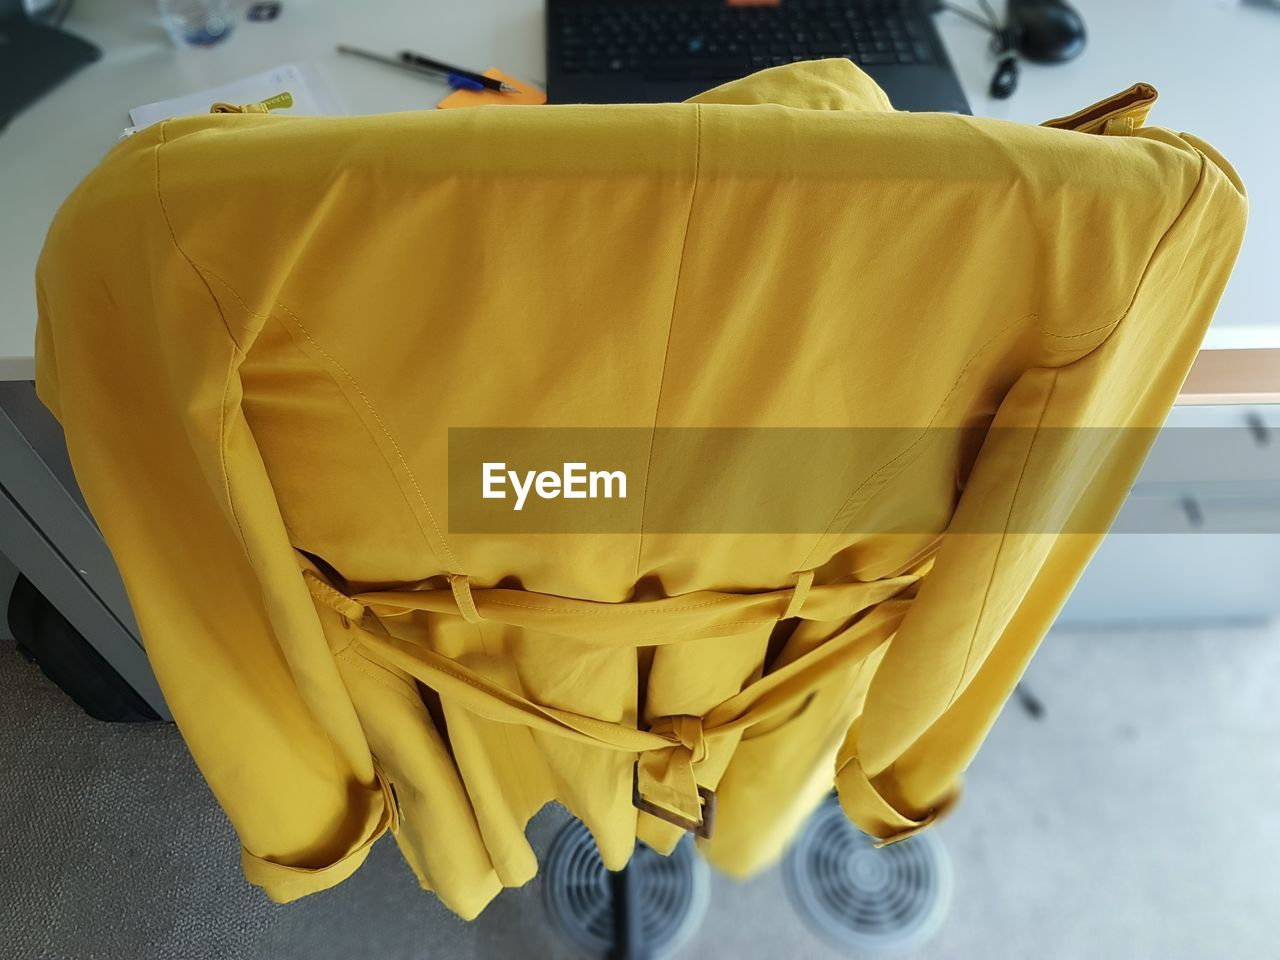 CLOSE-UP VIEW OF YELLOW